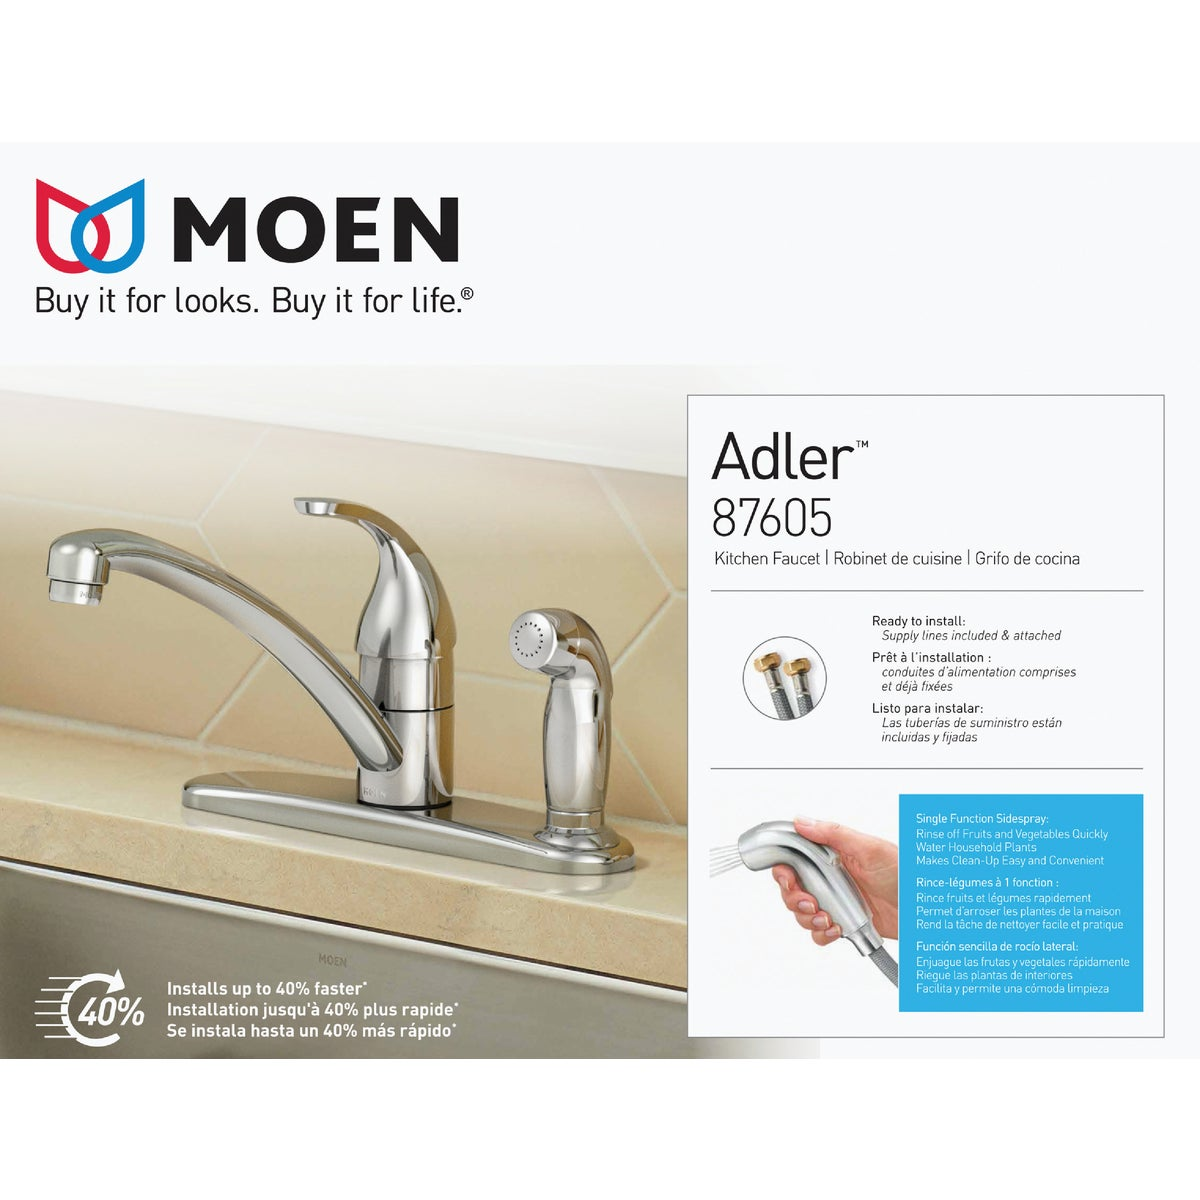 1H CHR KIT W/WHT SPRY - CA87554C by Moen Inc